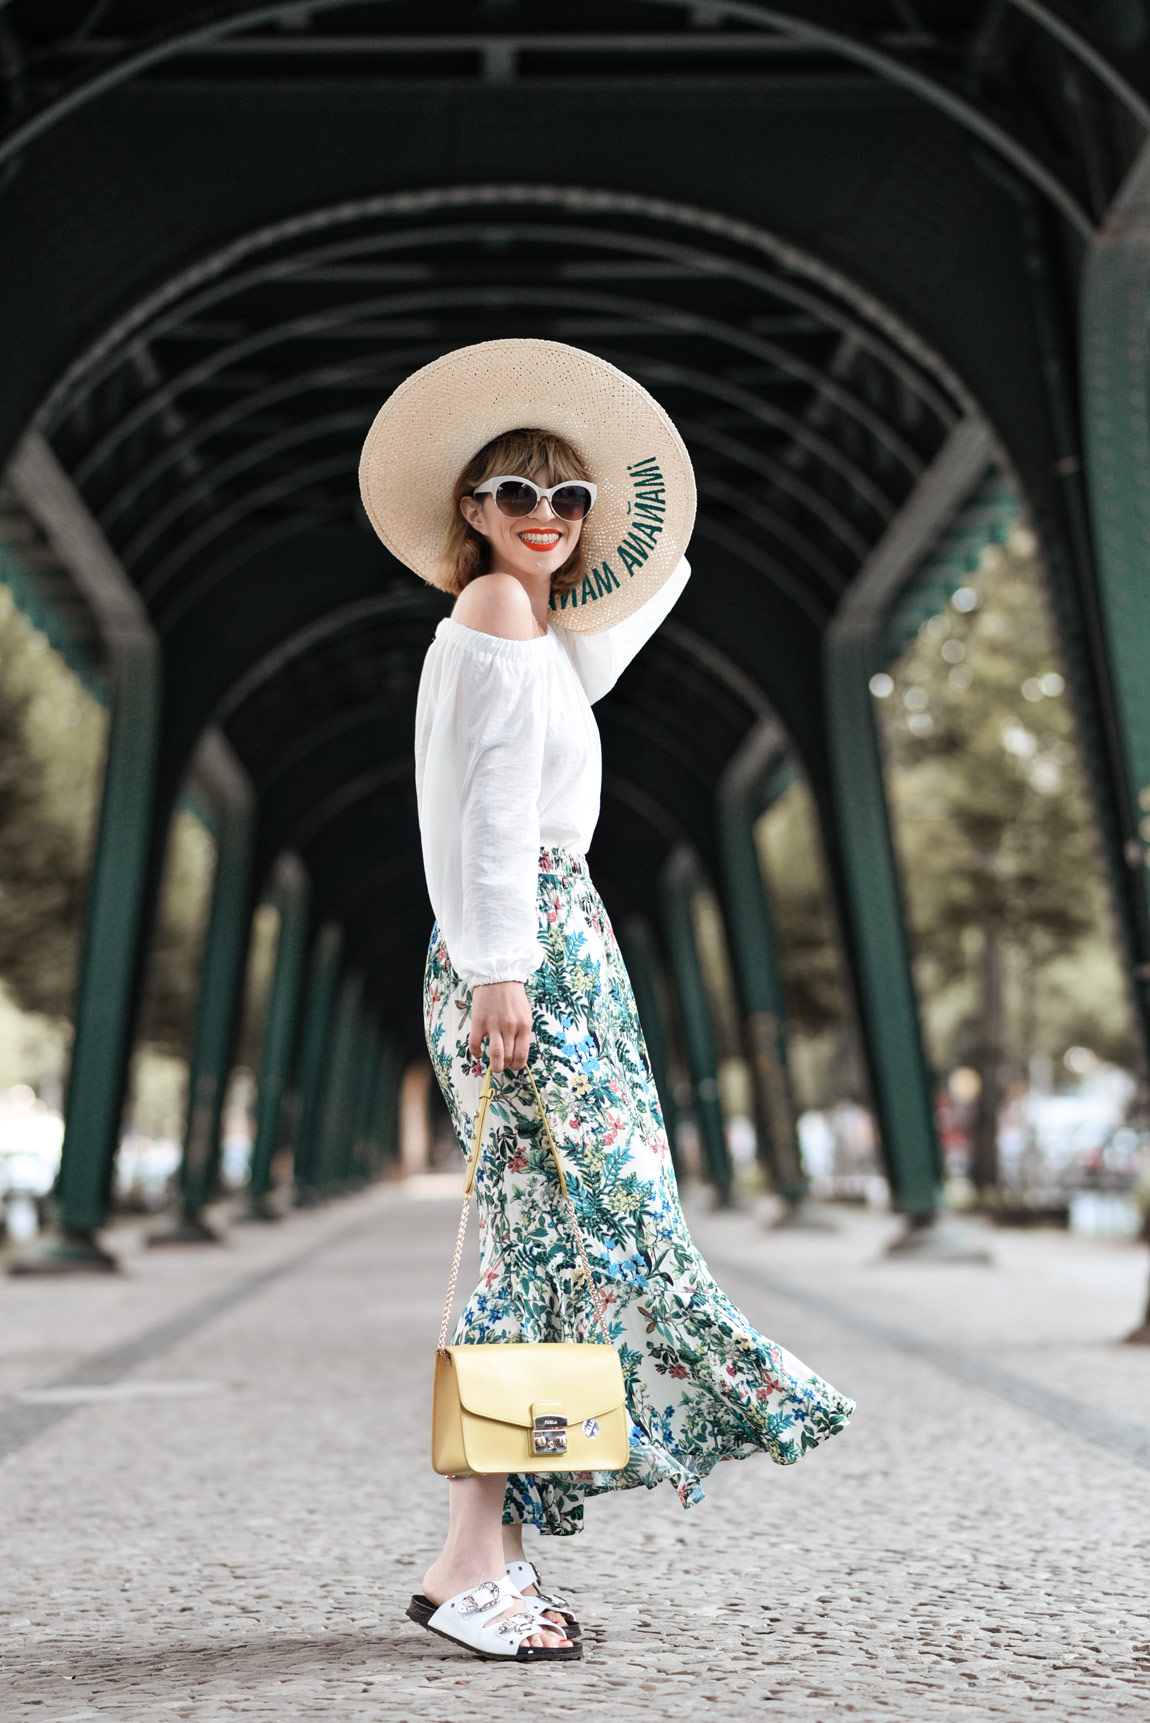 blumen, culotte, offshoulder, outfit, berlin, sommer, culottes, floral, weekday, streetstyle, suess, cute, retro, feminin, fashionblogger, modeblogger